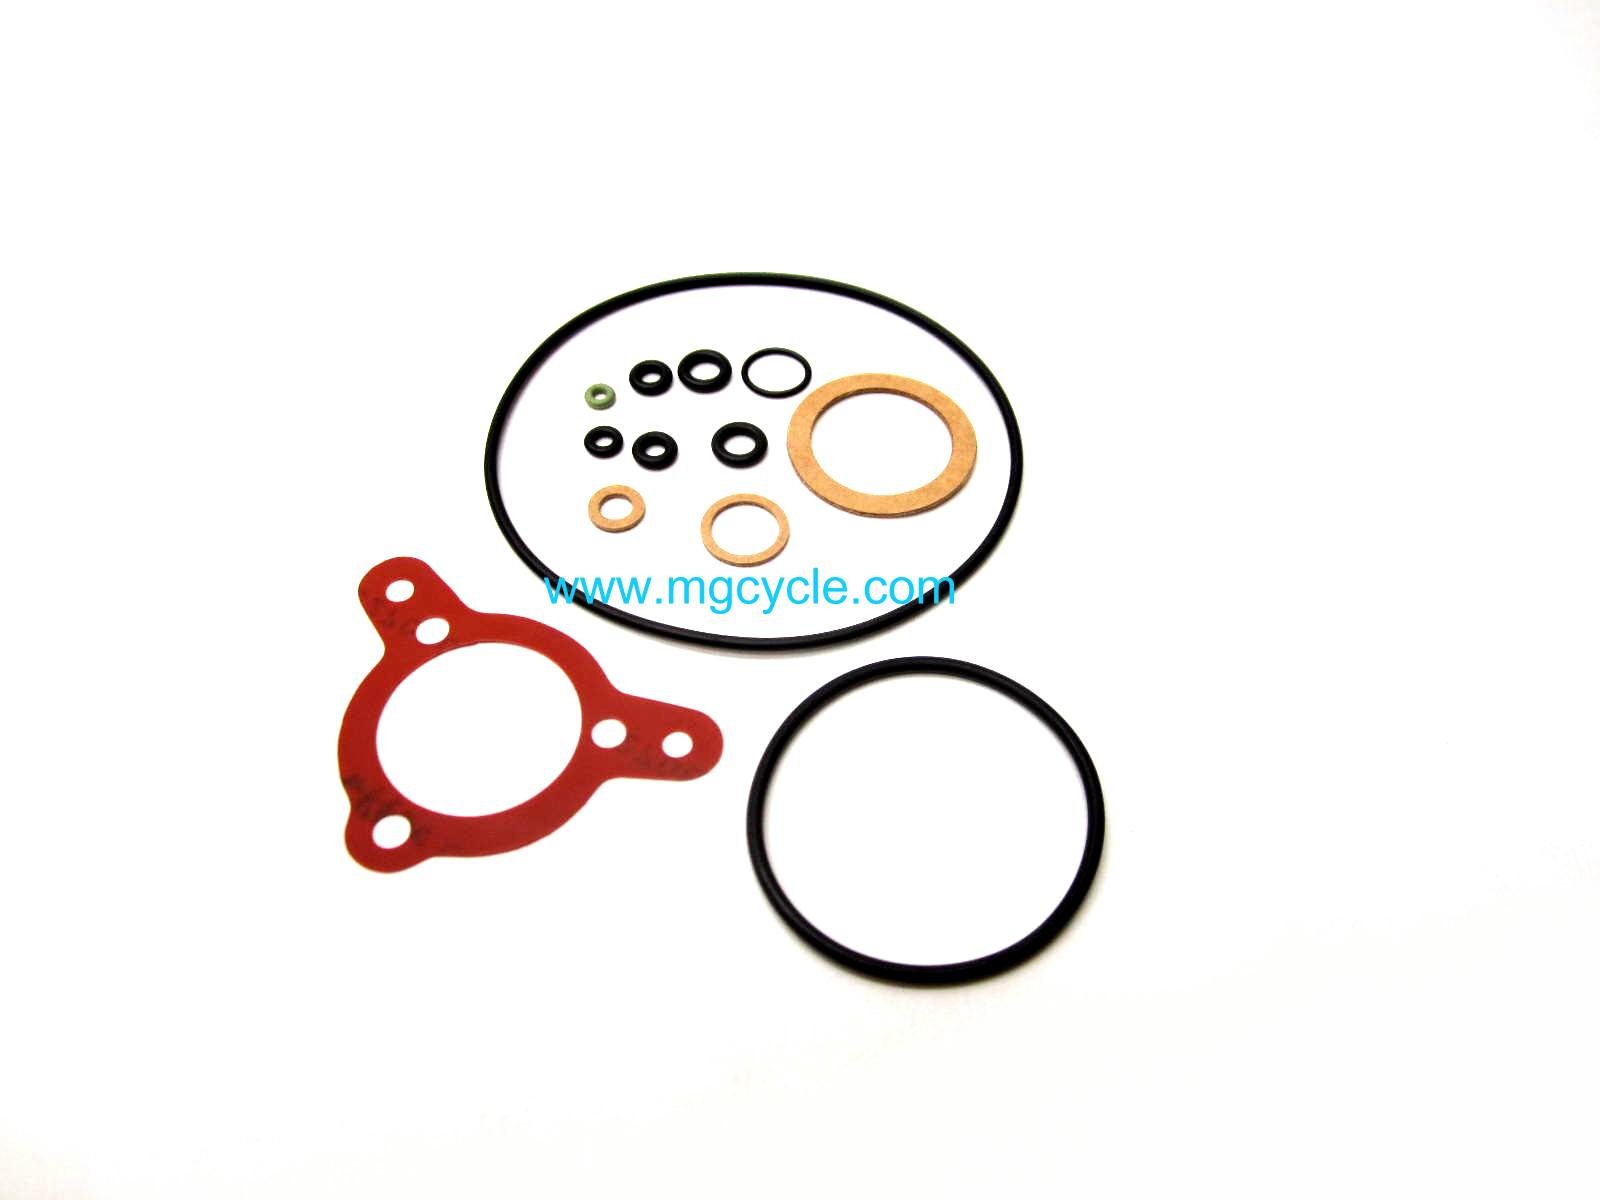 Dellorto carb kit PHF 52547 fits Guzzi PHF 30 and others